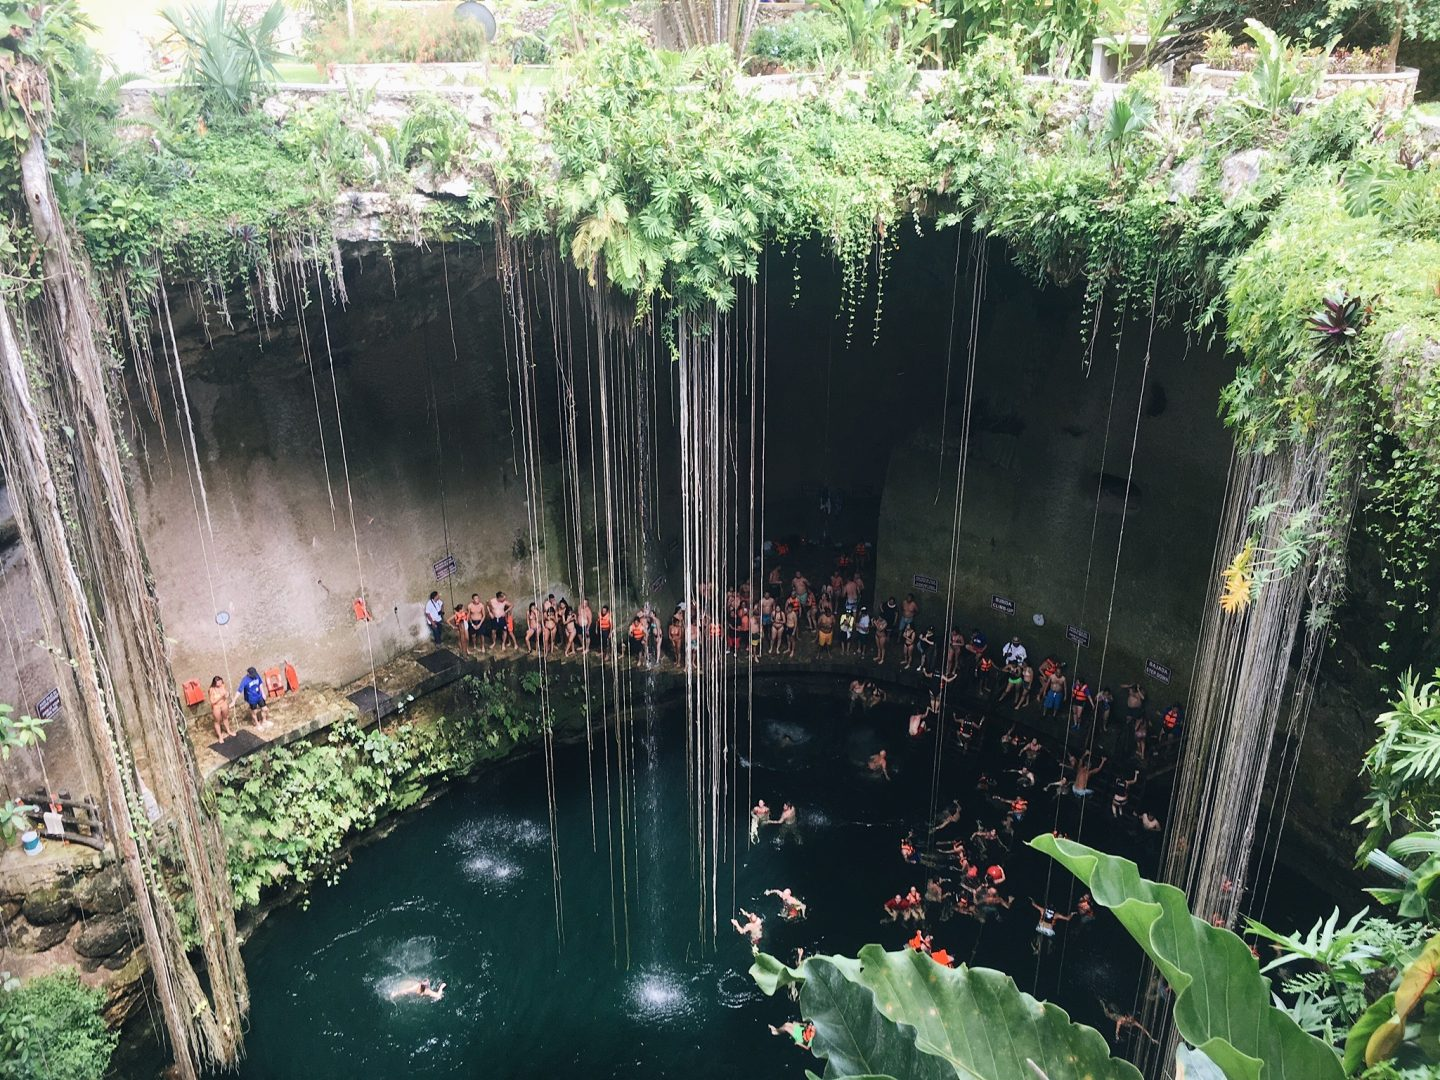 Swimming in a cenote in Mexico!